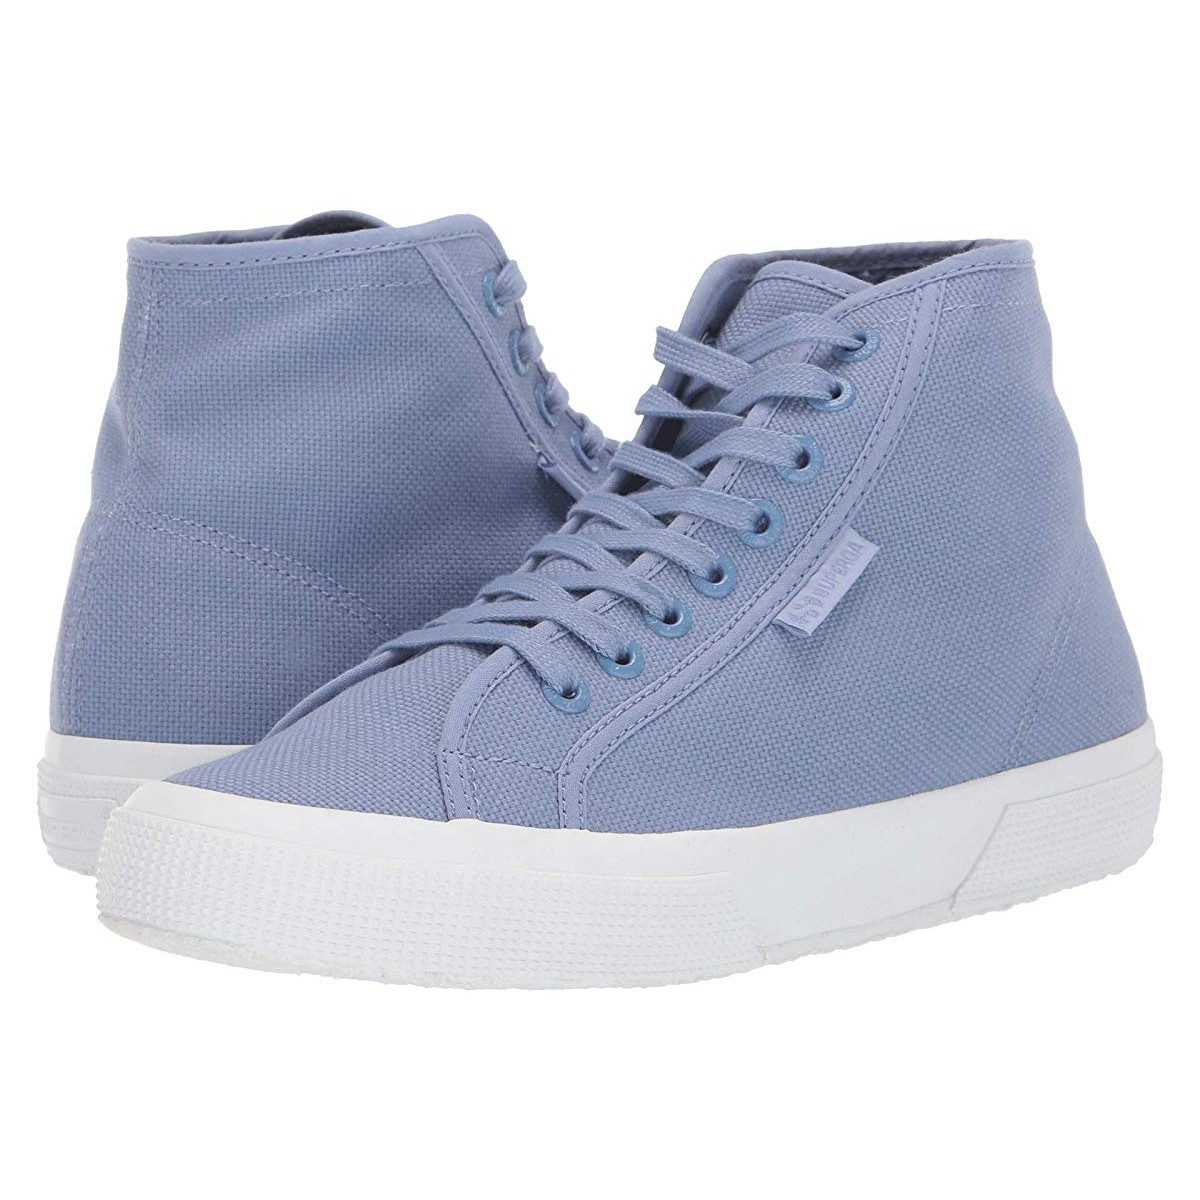 Кроссовки Superga 2795 Cotu Blue/Light Violet - Оригинал, фото 1